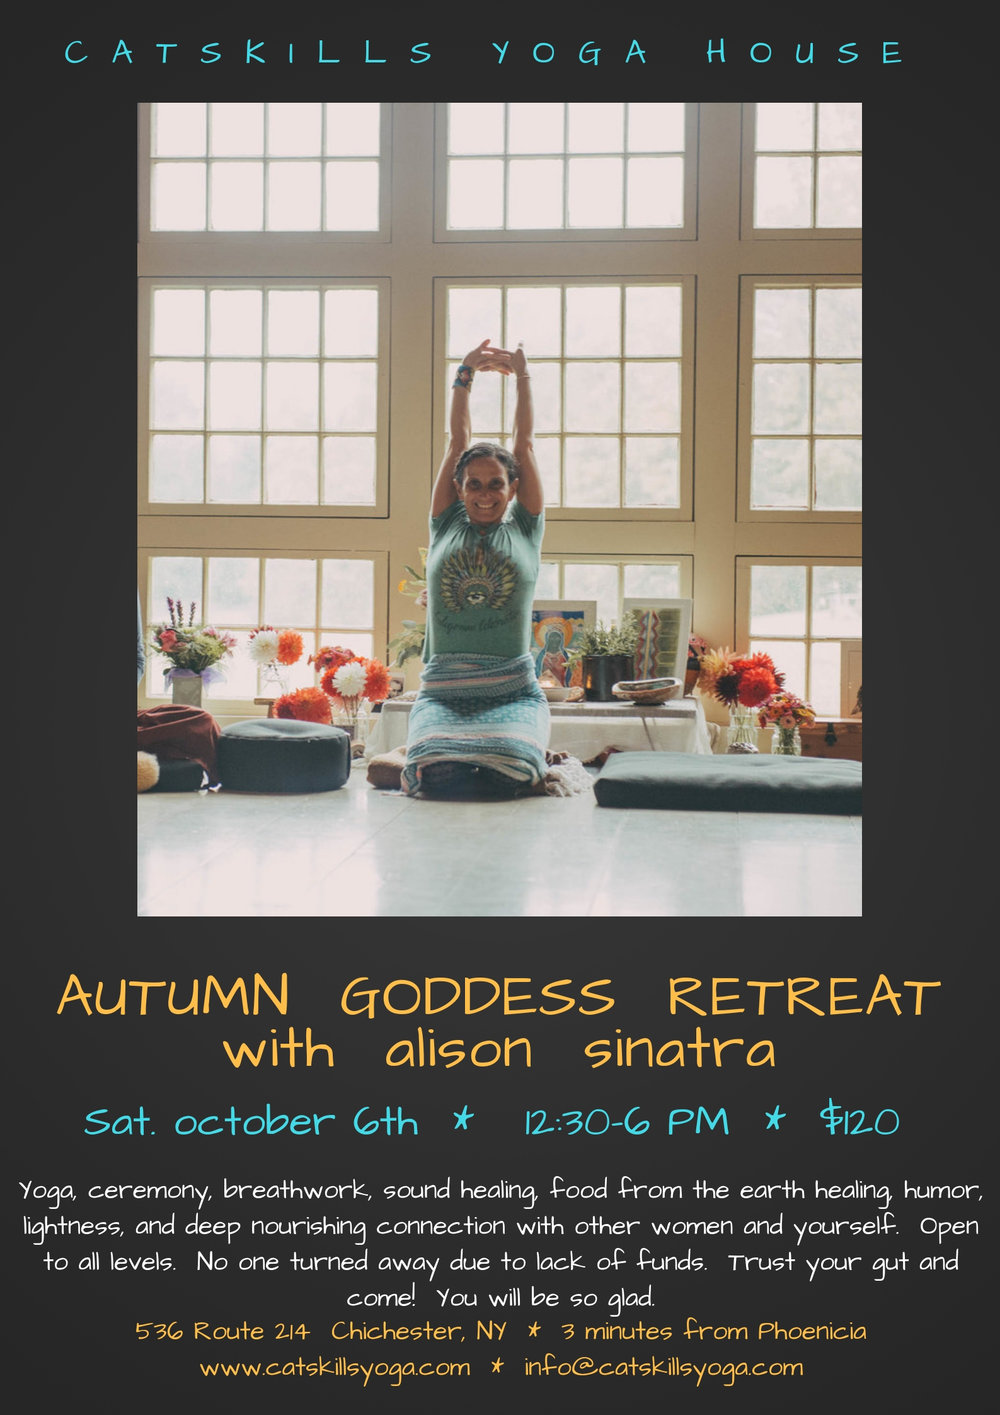 goddess retreat 2018.jpg